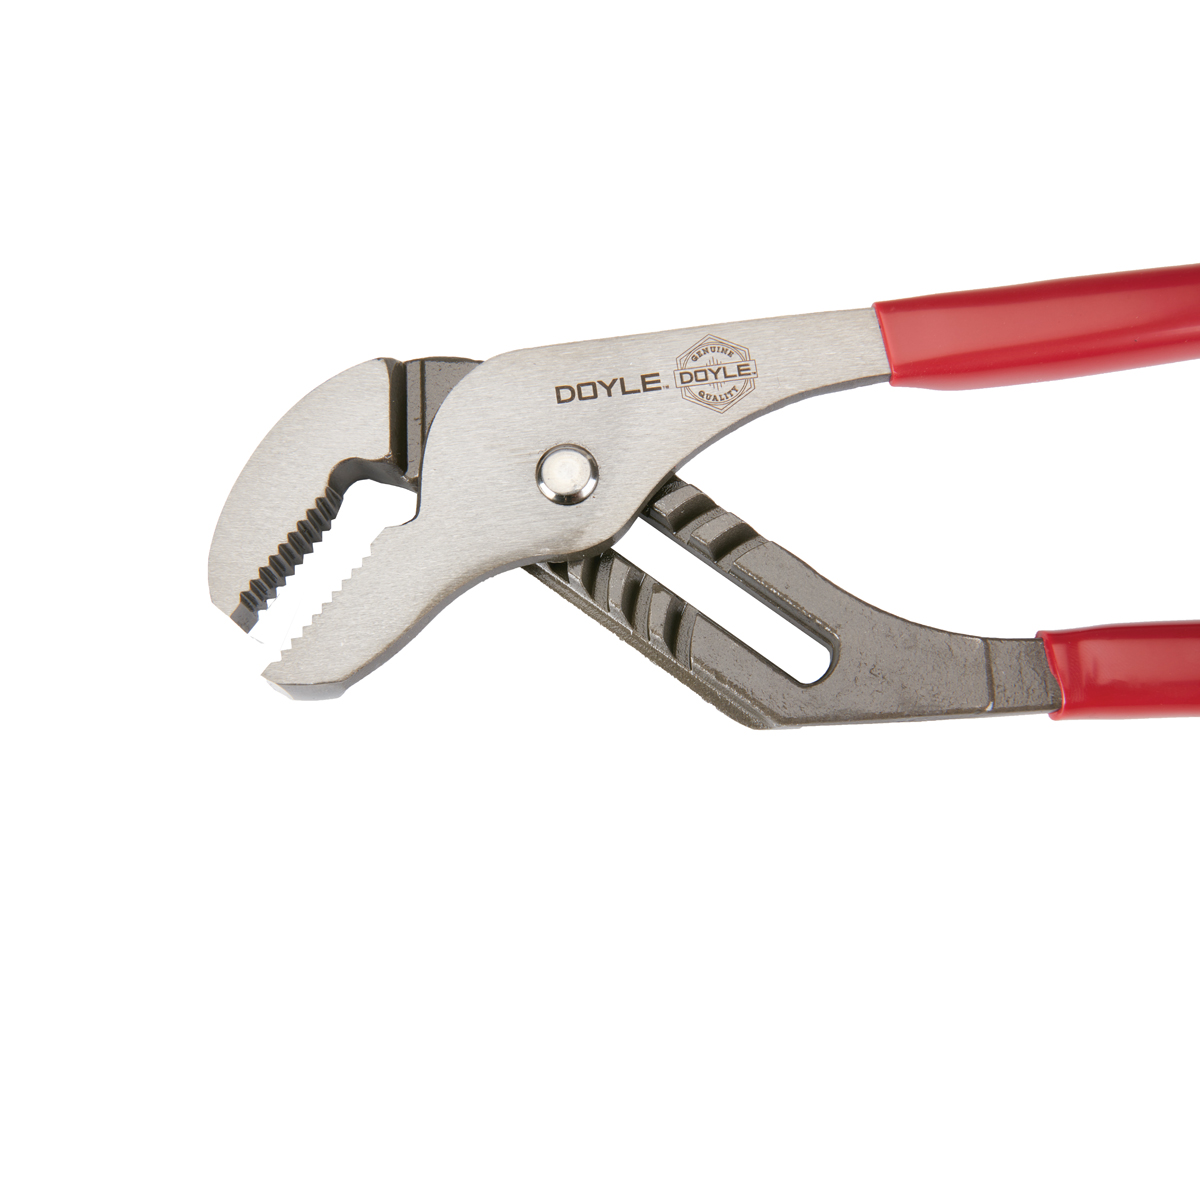 12 in professional groove joint pliers